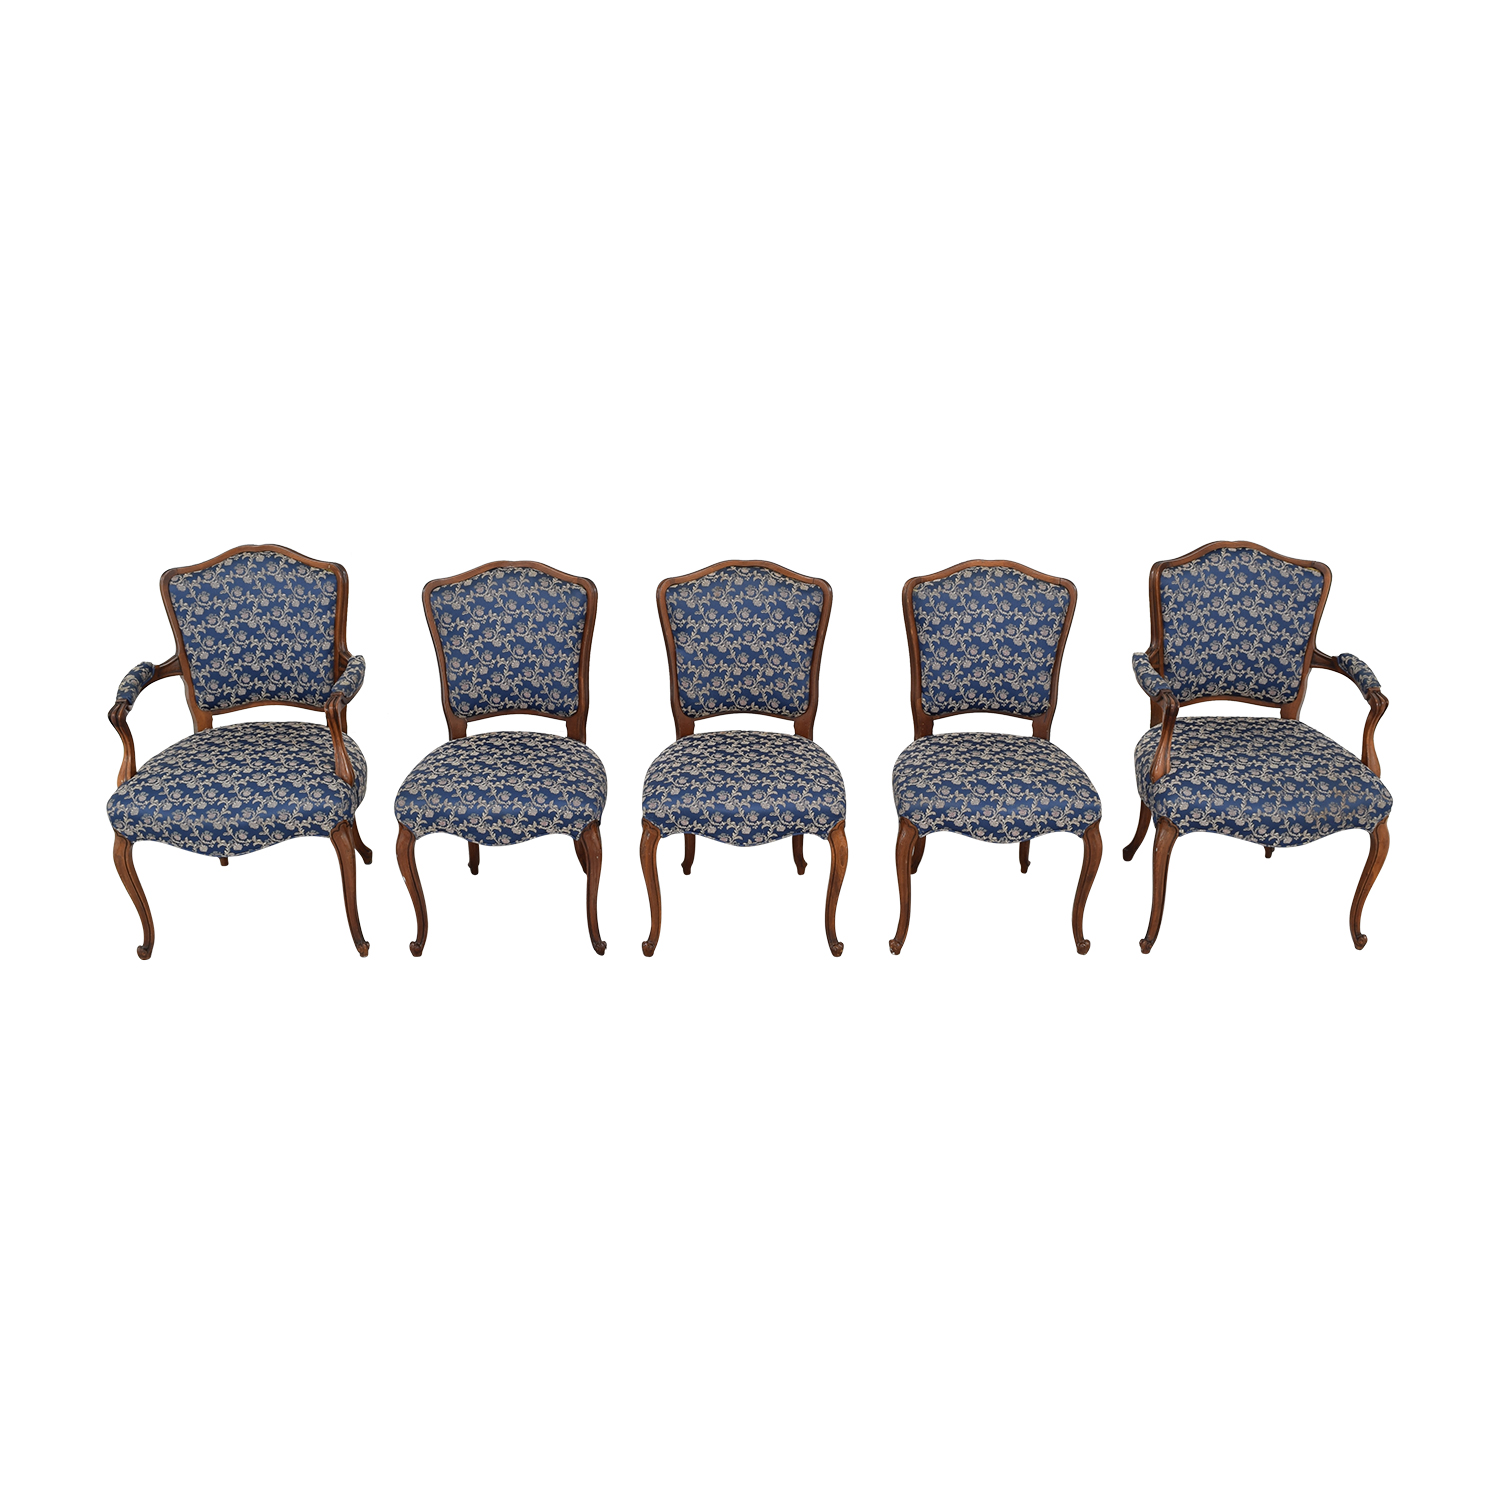 French Provincial Dining Chairs brown & blue